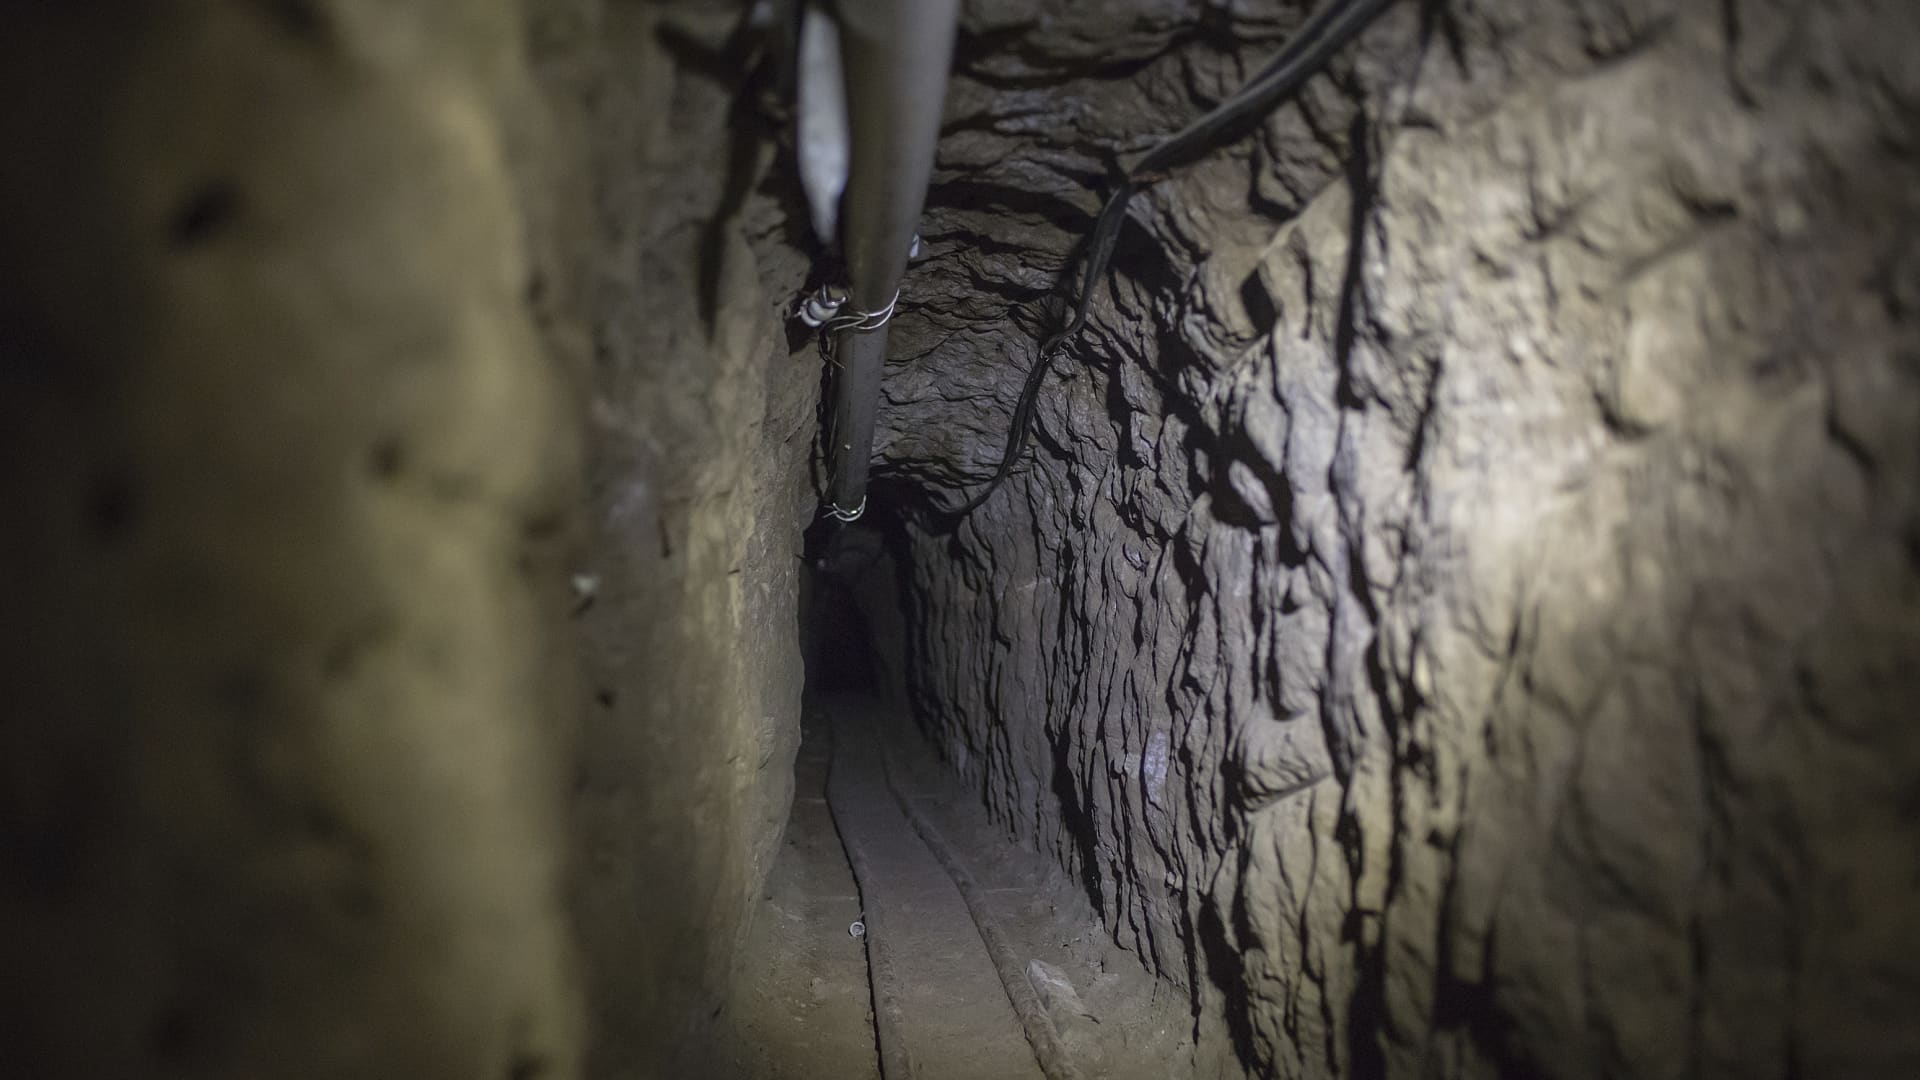 A view of the tunnel through which according to the authorities Joaquin 'El Chapo' Guzman escaped from Mexican Maximum Security Prison of 'El Altiplano' on July 15, 2015 in Mexico City, Mexico.